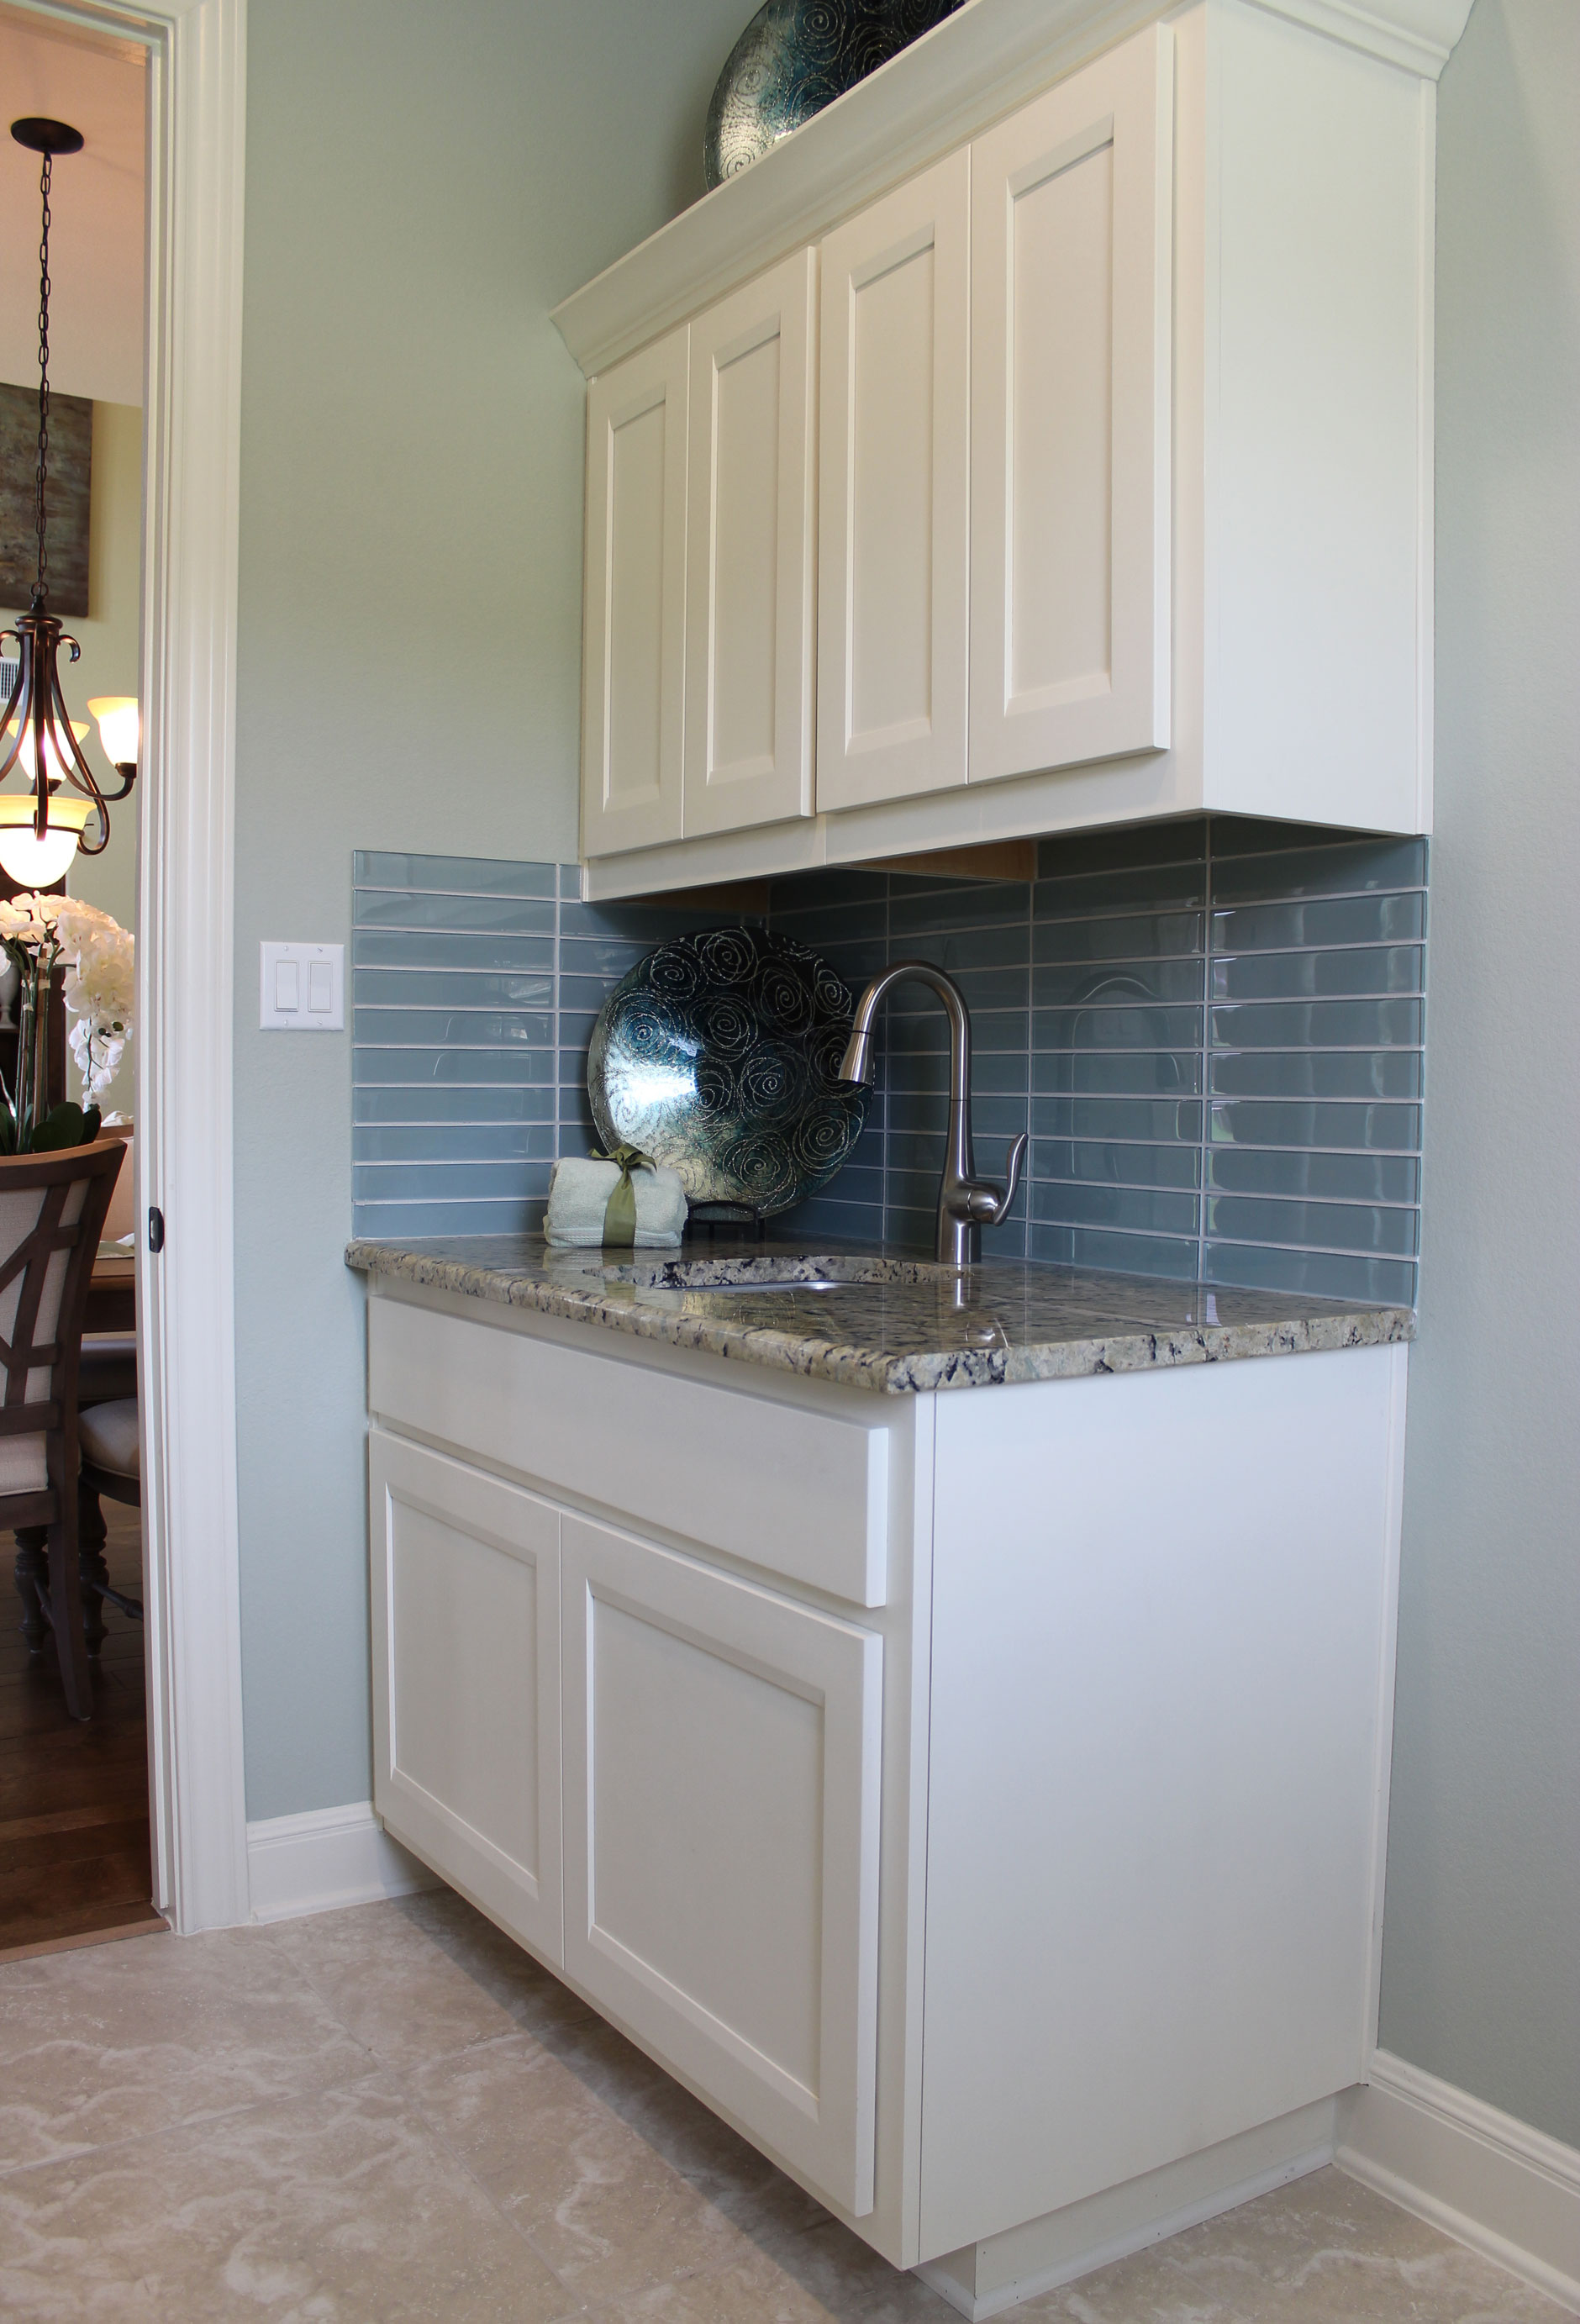 Laundry room cabinets in Bone with Briscoe doors by Burrows Cabinets